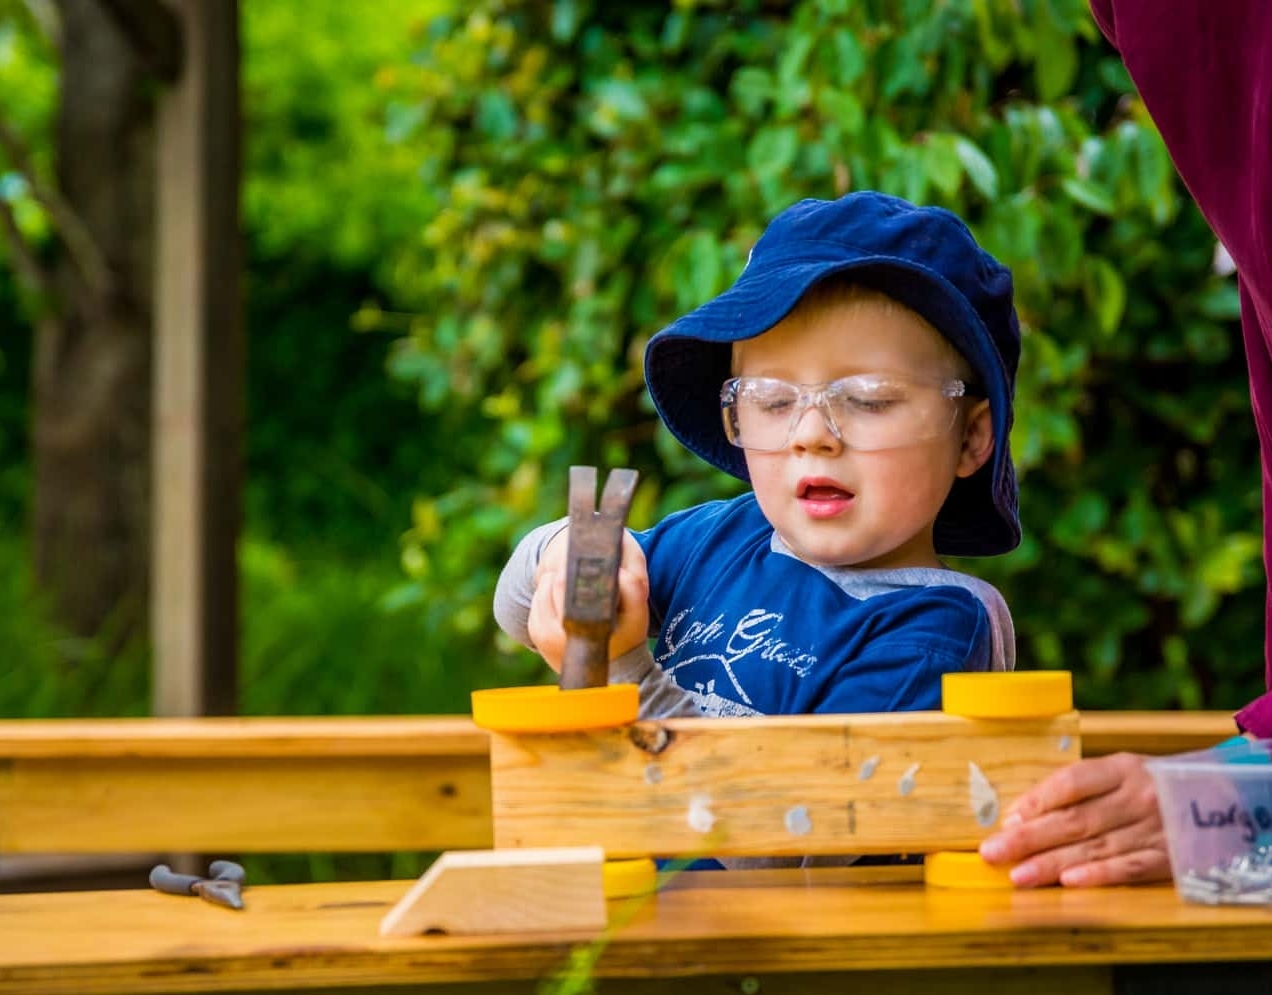 Chiselhurst boy doing woodwork all by himself with educator watching.